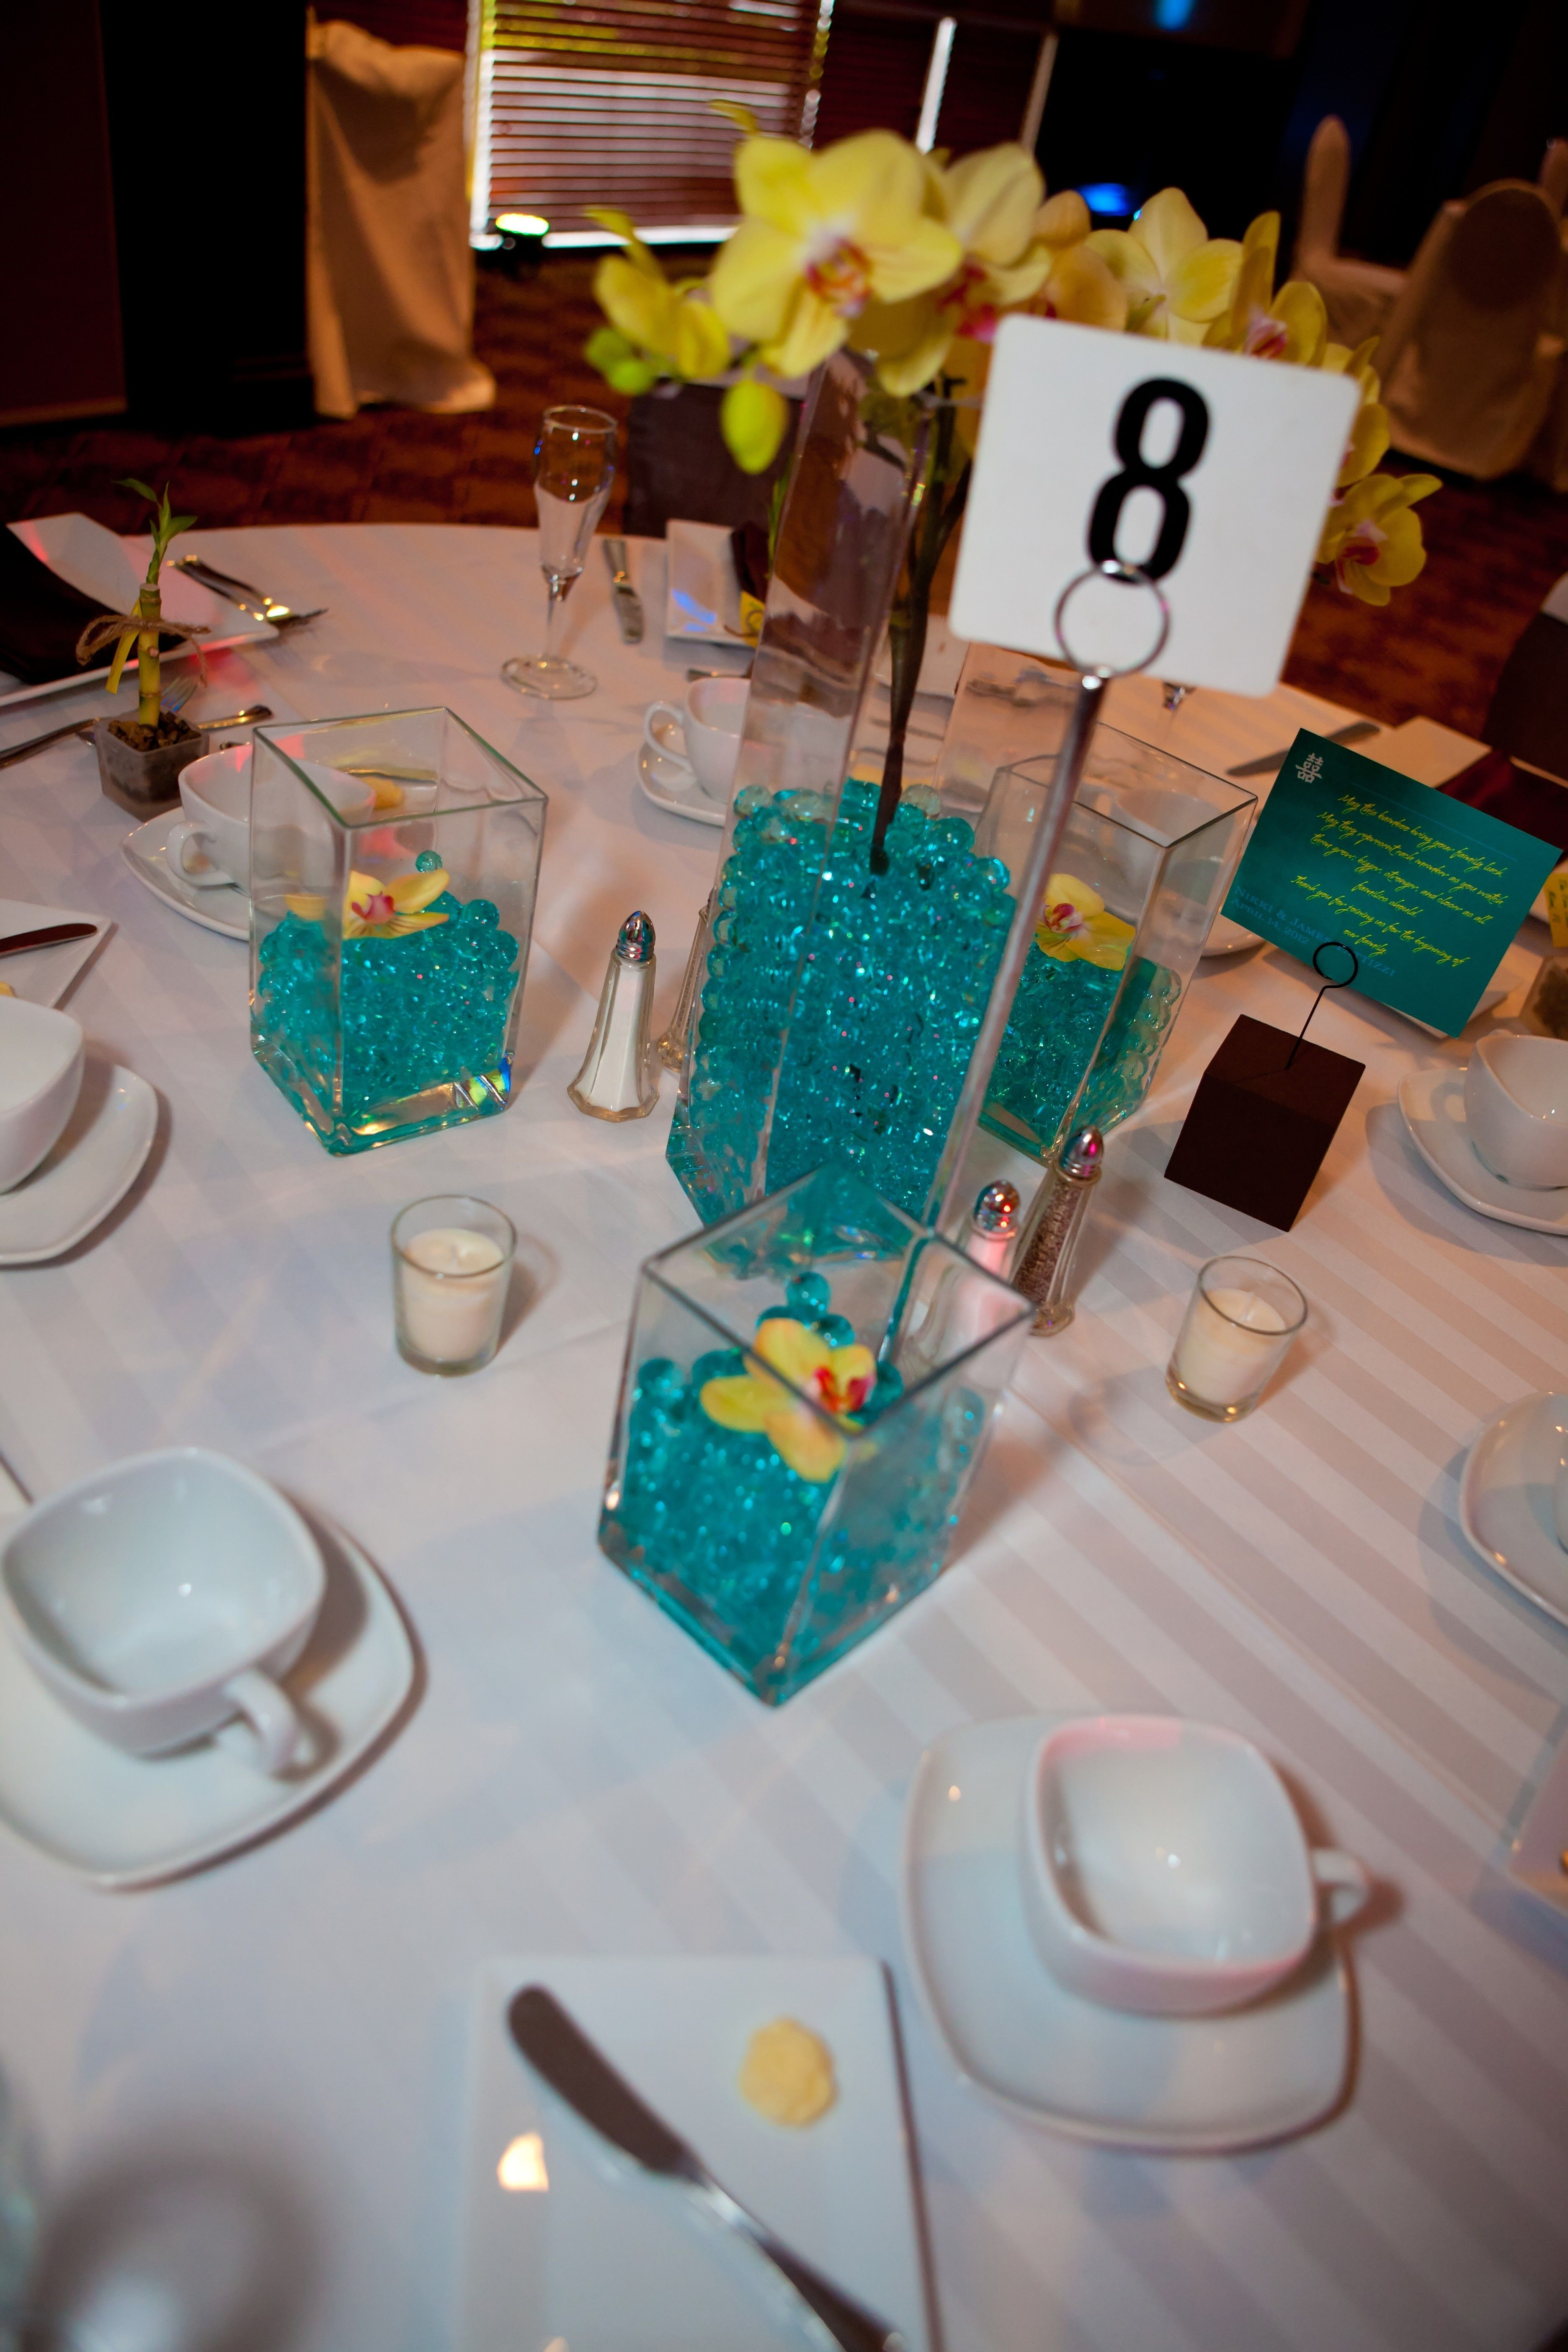 small square vases for wedding of wedding centerpieces square vases teal water beads yellow inside wedding centerpieces square vases teal water beads yellow orchids candles